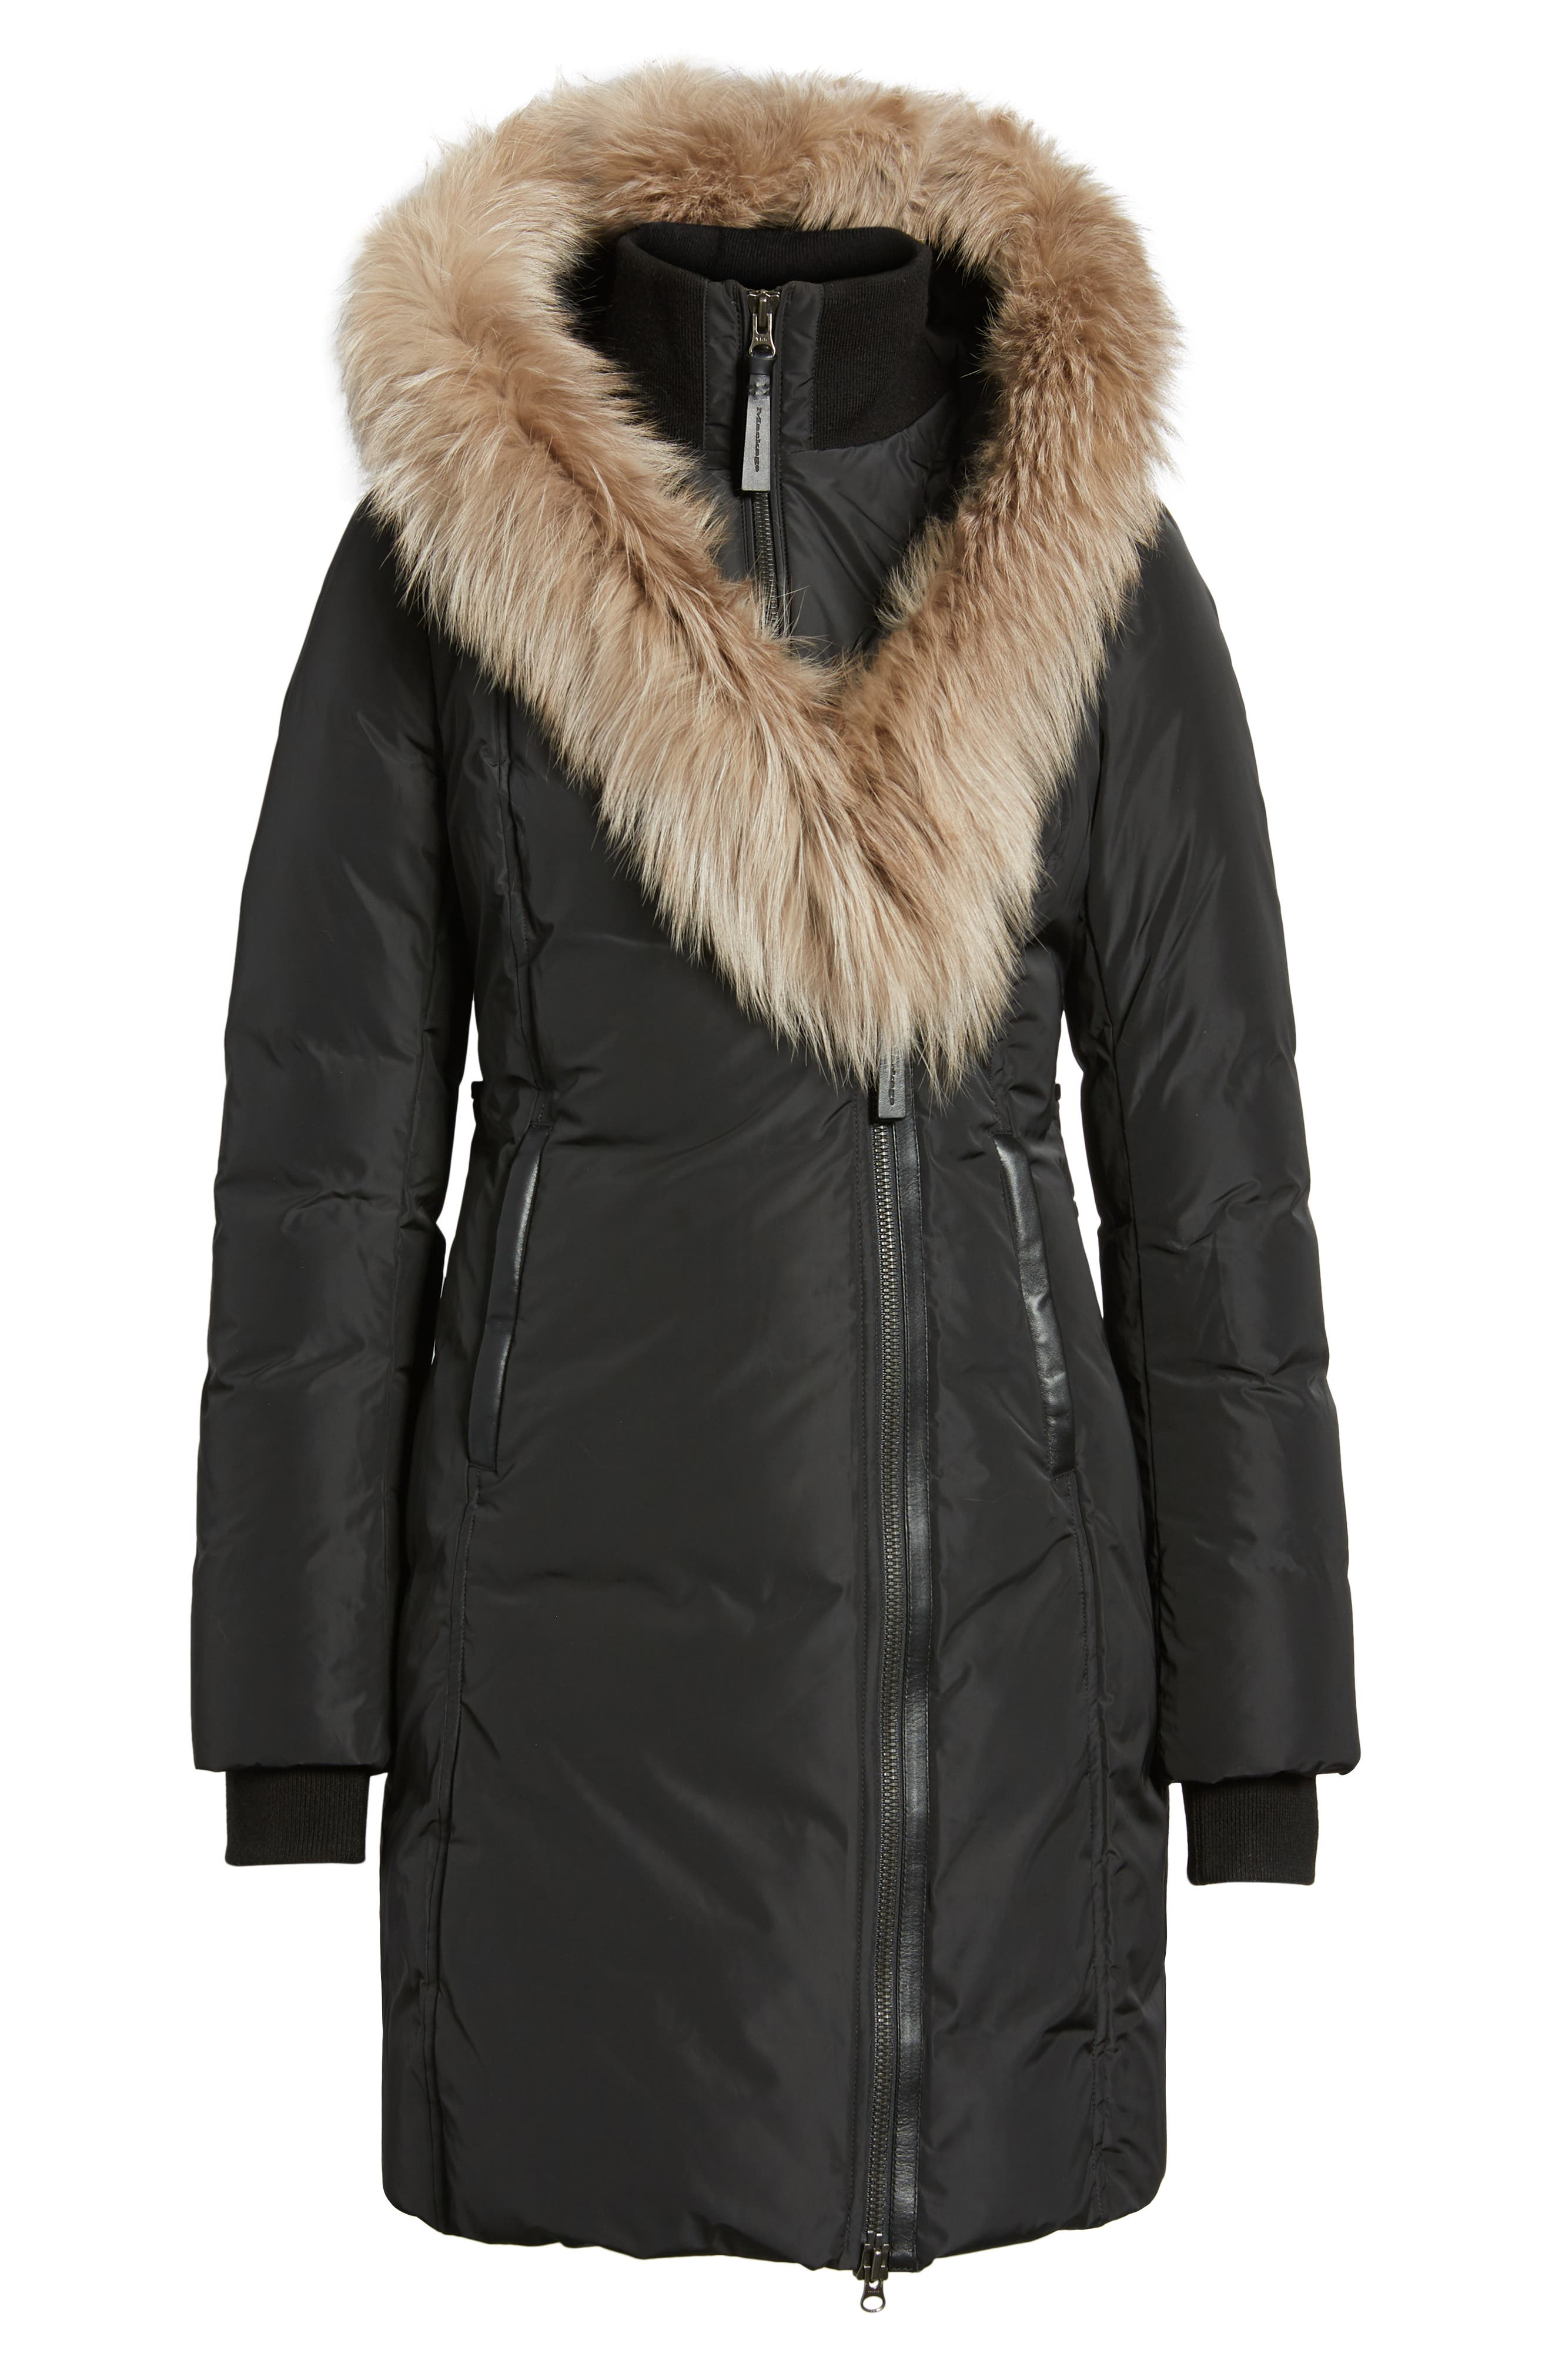 MACKAGE,                             800 Fill Power Down Coat with Genuine Fox Fur Trim,                             Alternate thumbnail 6, color,                             001